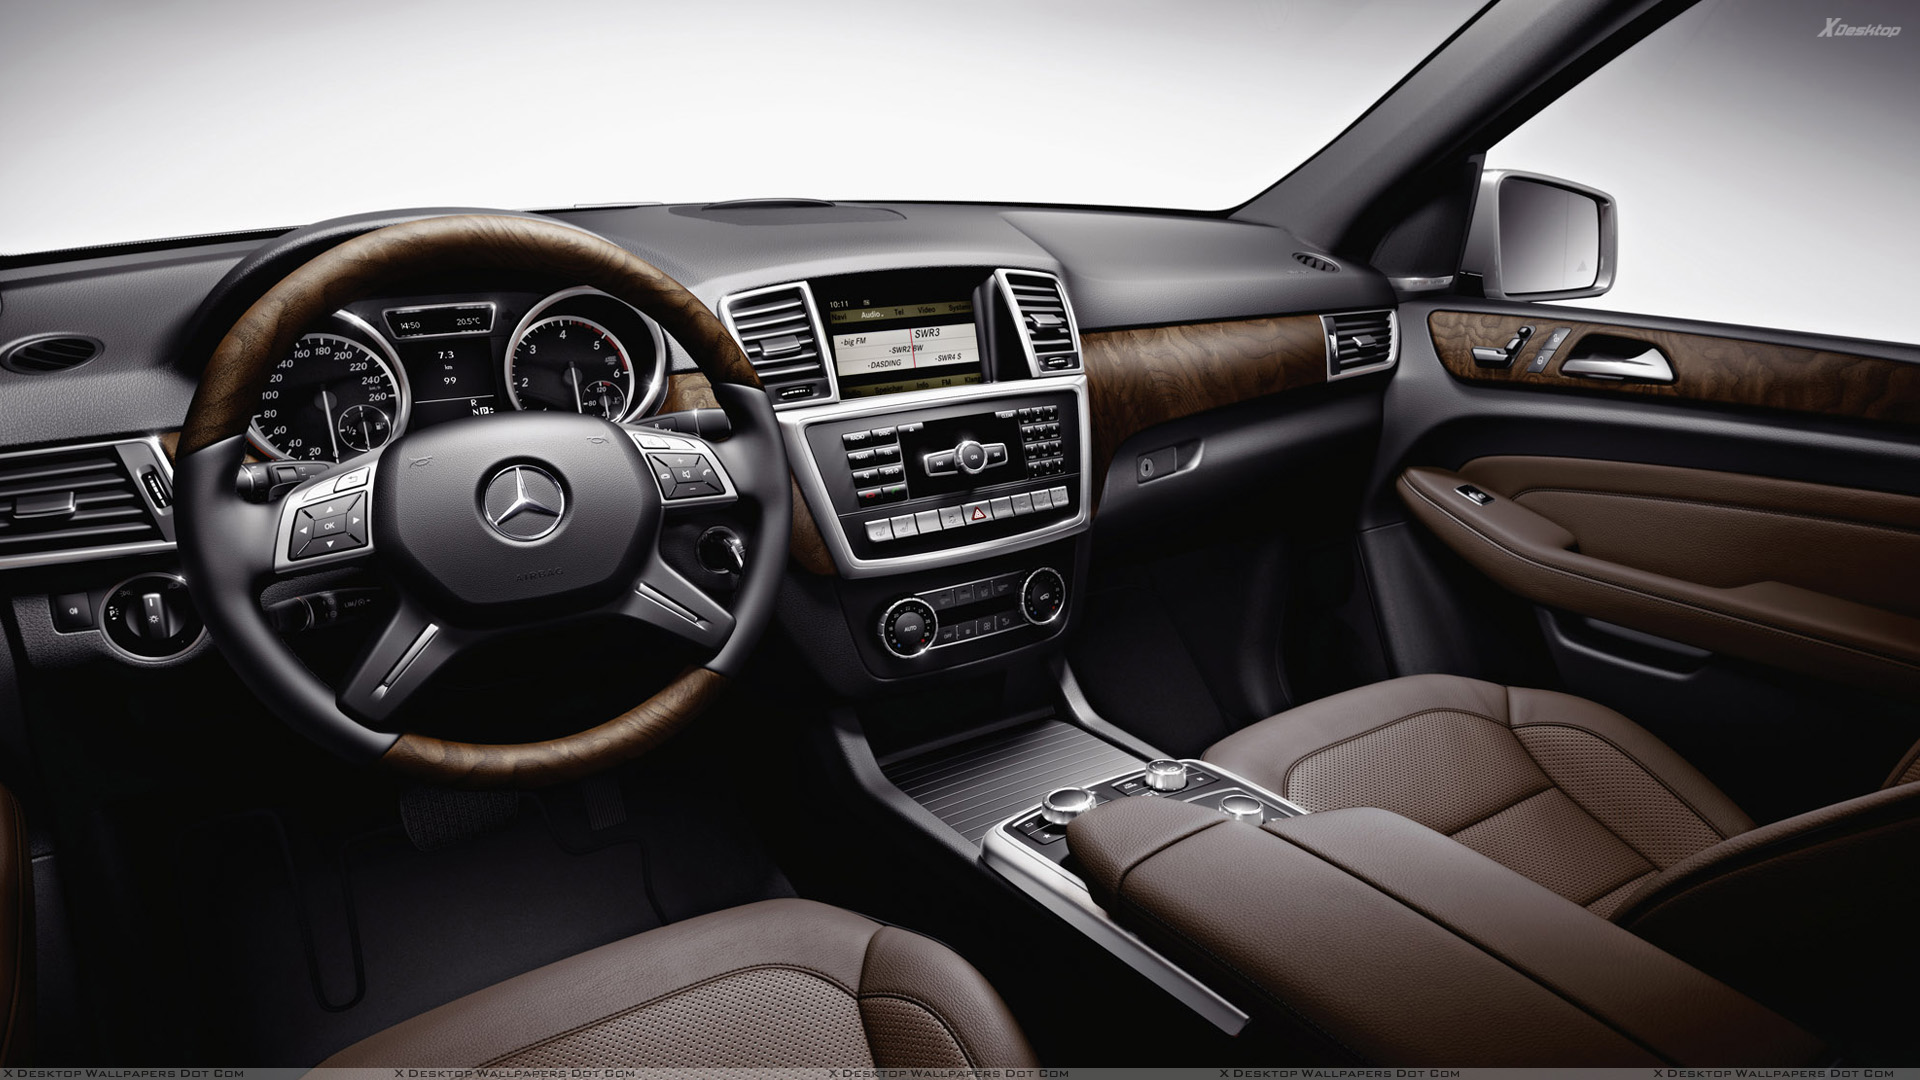 2012 mercedes benz m class accessories interior wallpaper ForInterior Parts For Mercedes Benz